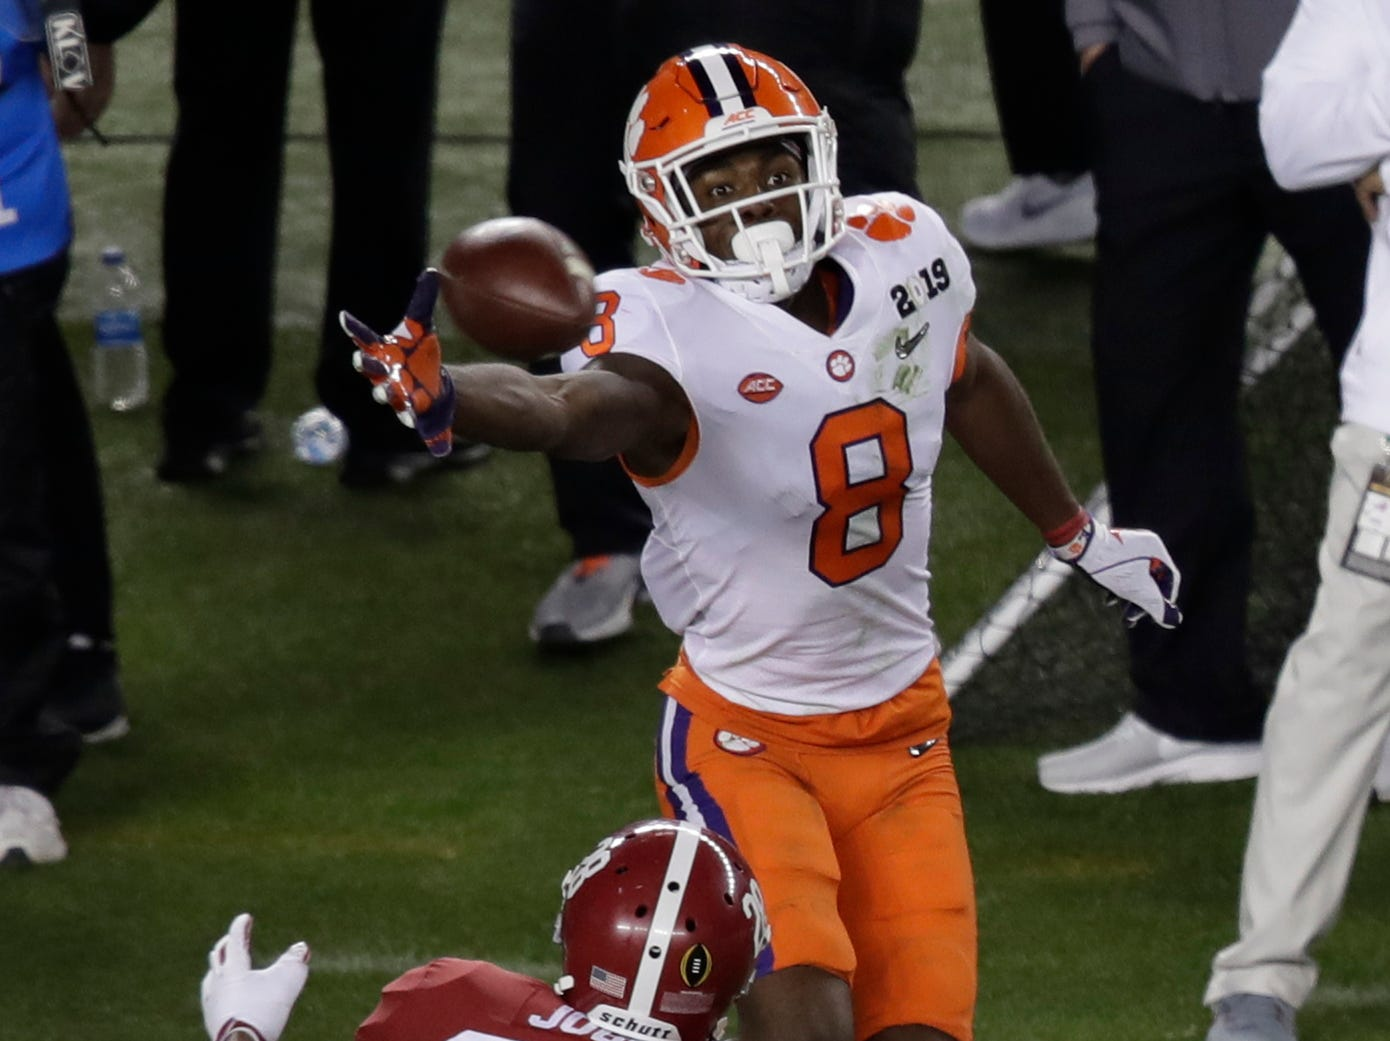 Clemson's Justyn Ross makes a one-handed catch in front of Alabama's Josh Jobe during the second half of the NCAA college football playoff championship game, Monday, Jan. 7, 2019, in Santa Clara, Calif. (AP Photo/Jeff Chiu)